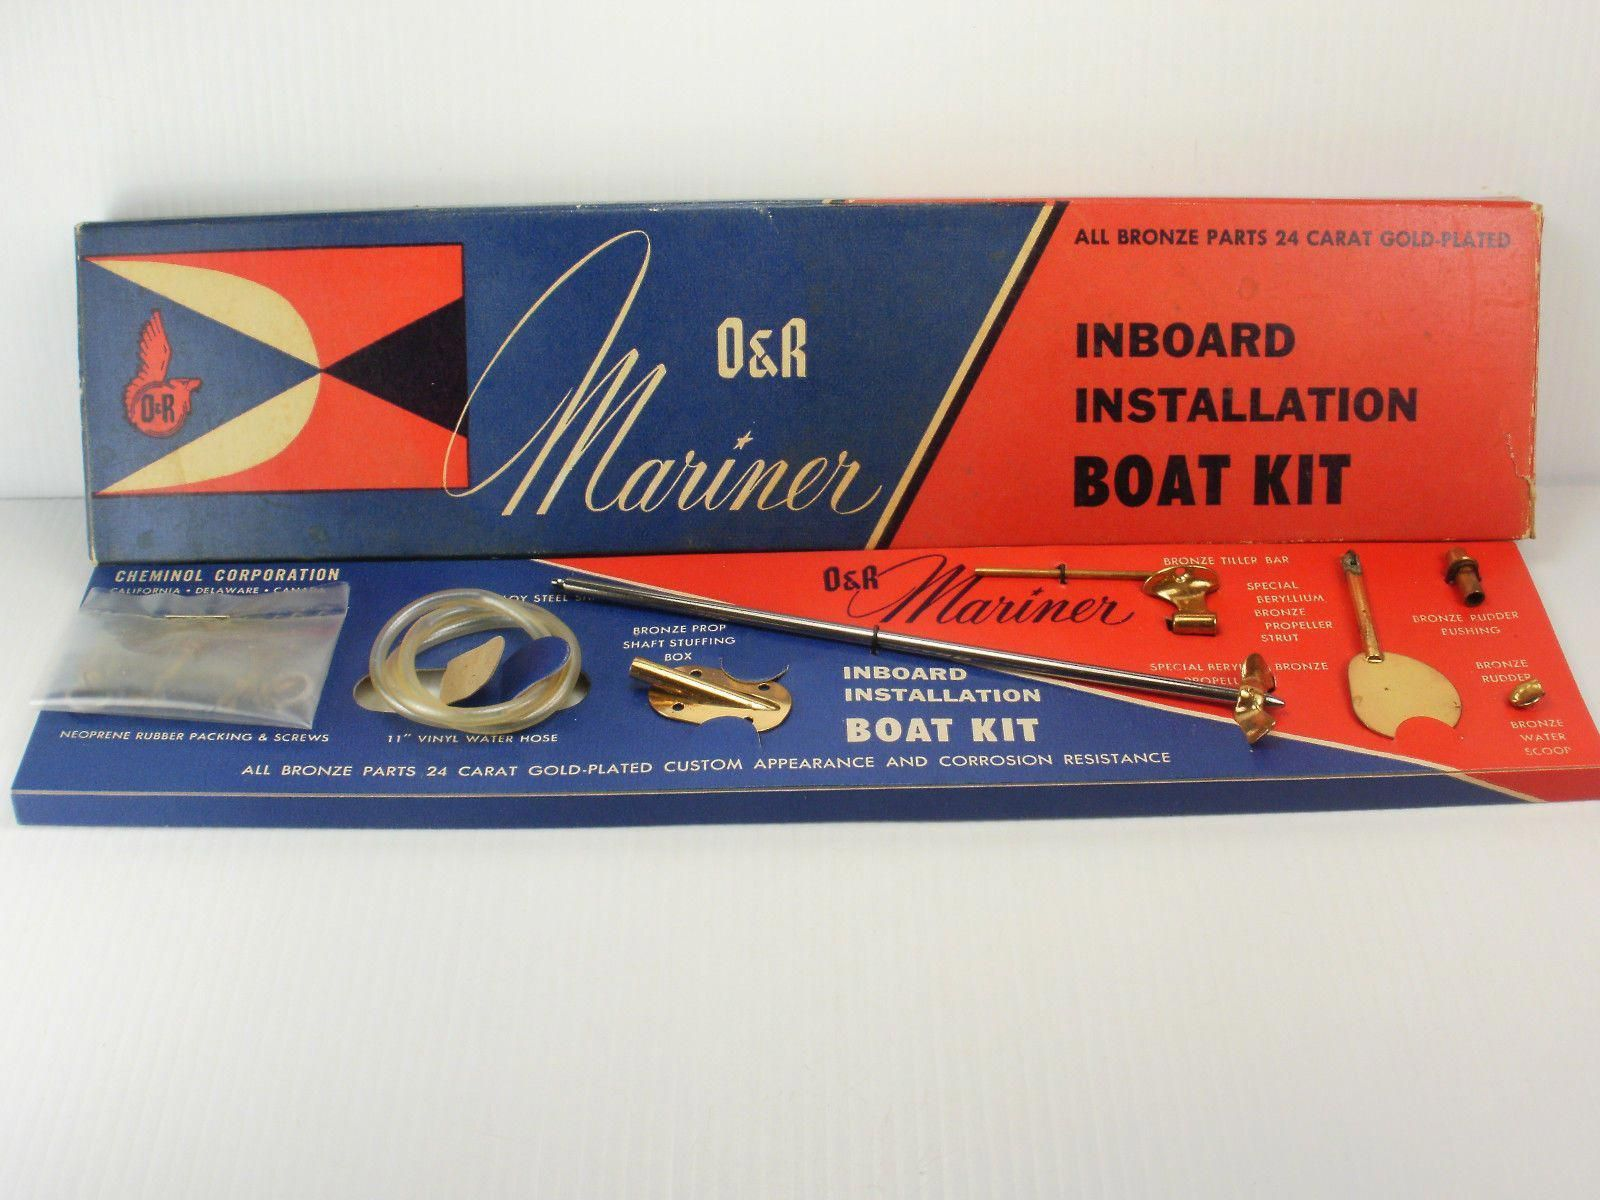 new in box vintage o r mariner inboard marine engine installation boat kit ebay boatbuildingkits [ 1600 x 1200 Pixel ]